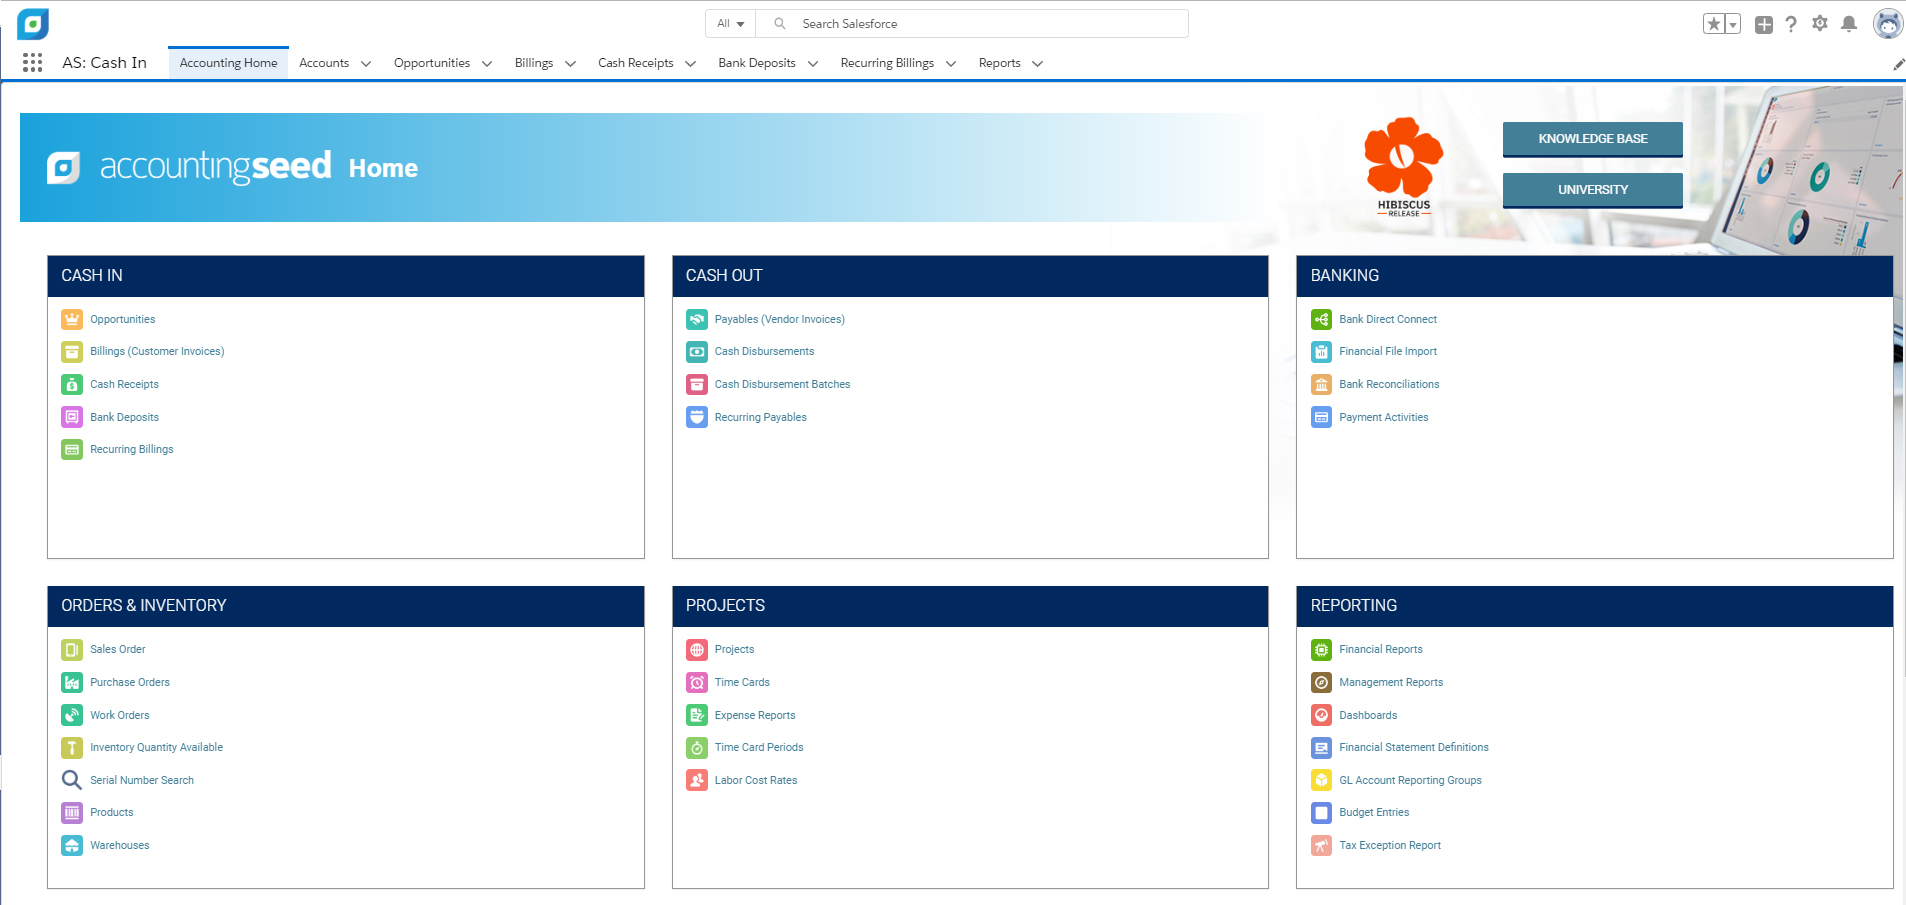 Accounting Seed's adaptable home screen allows for quick access to all daily accounting tasks and reporting needs, and can be customized per user!